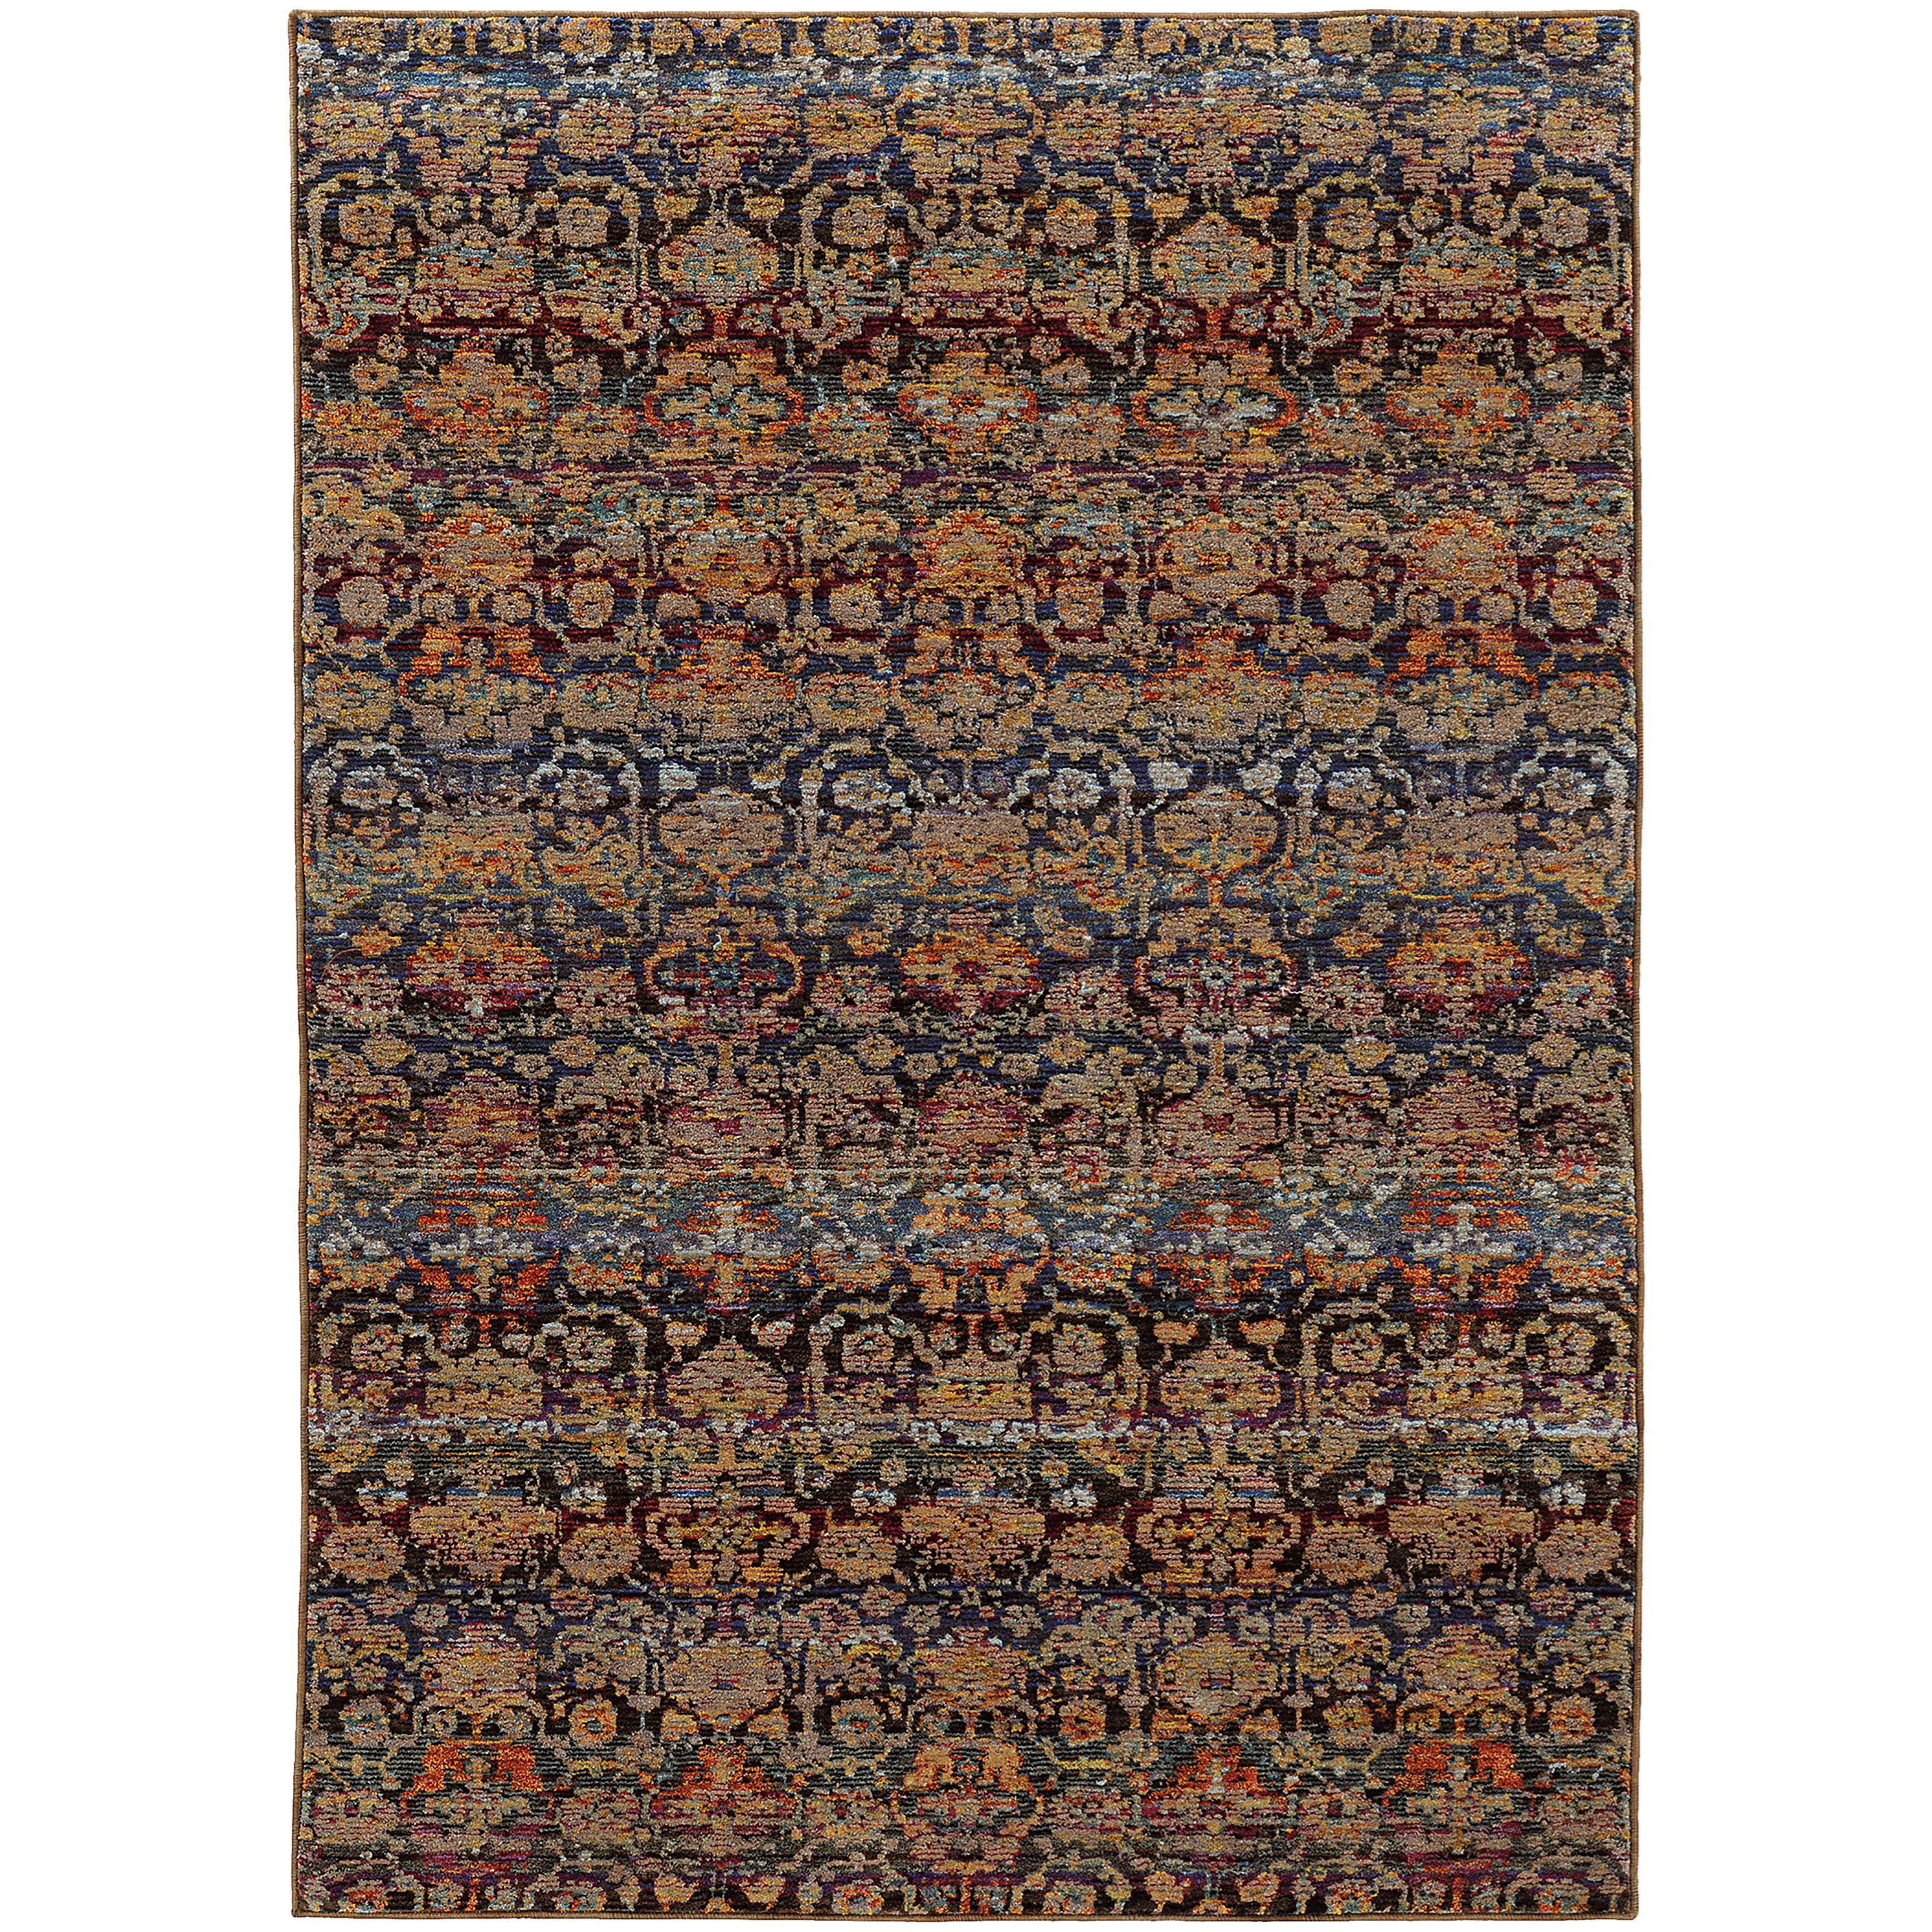 "Andorra 3' 3"" X  5' 2"" Casual Multi/ Blue Rectangle  by Oriental Weavers at Steger's Furniture"